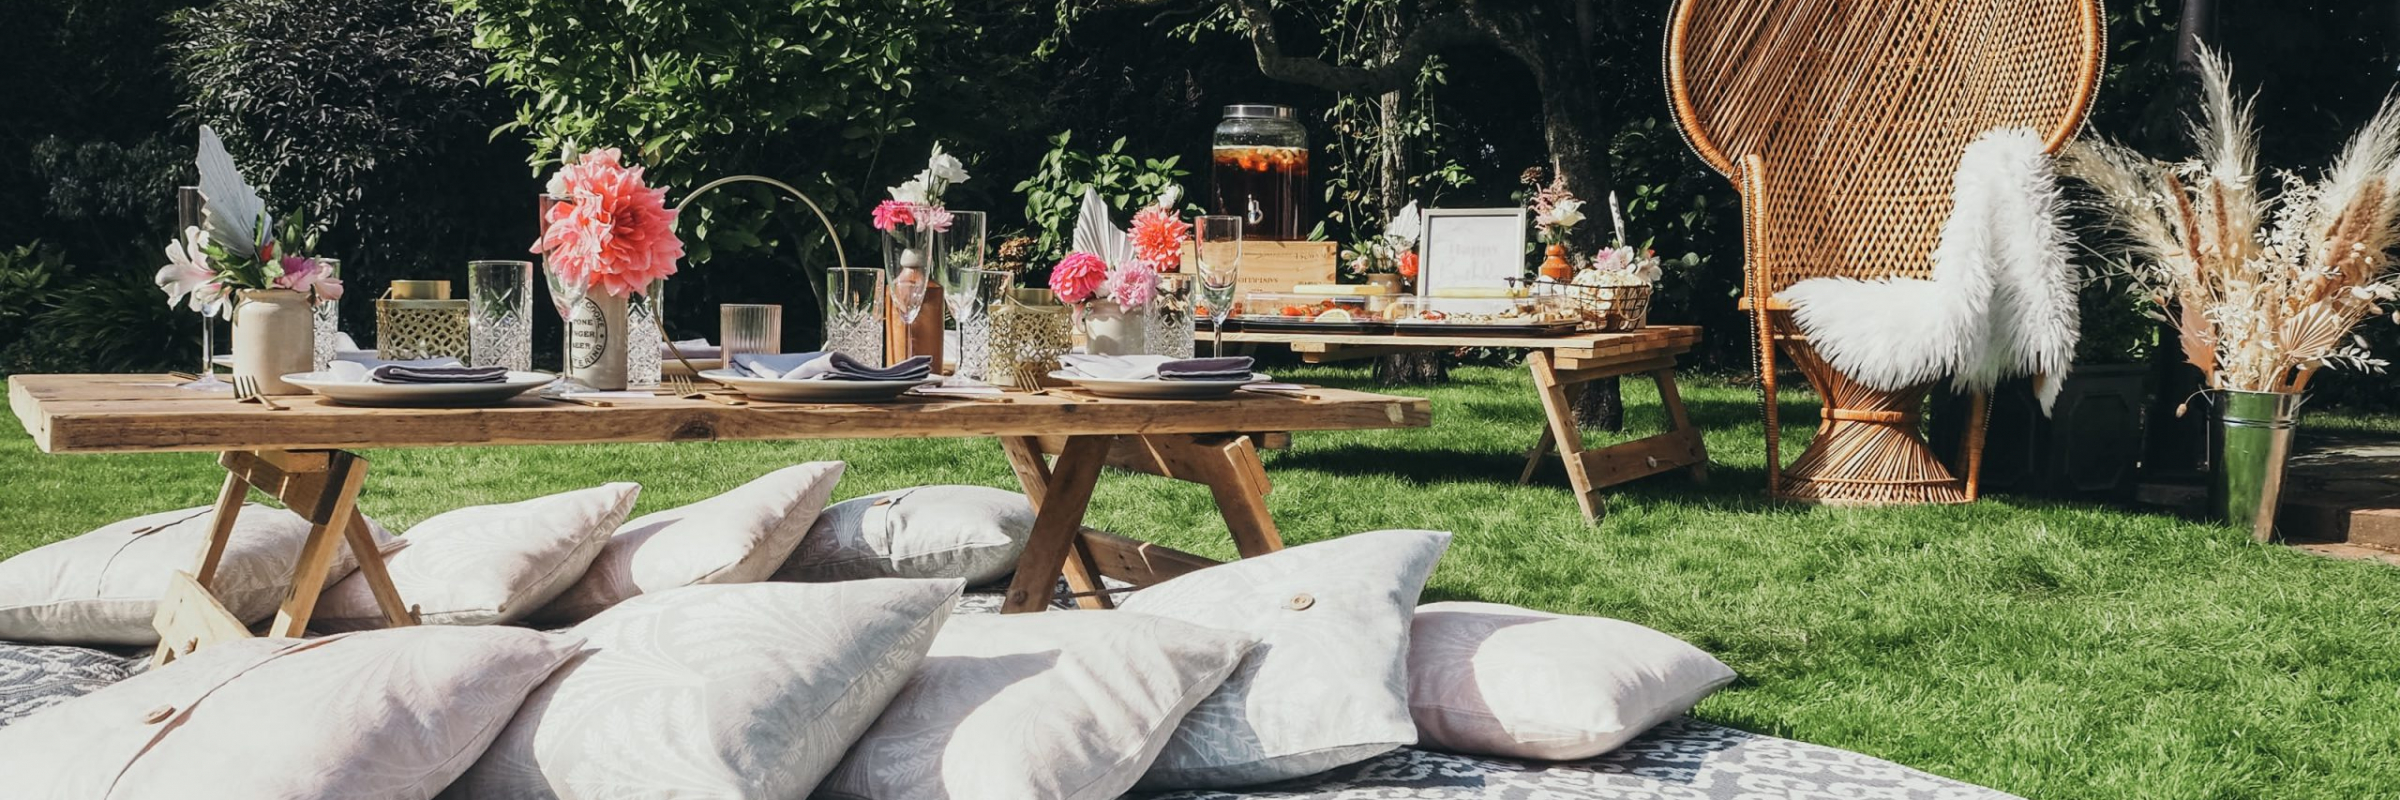 Stylish picnic party inspiration from www.pitch-boutique.co.uk - featuring reclaimed wooden tables, themed soft furnishings, peacock chairs, artisan florals and grazing tables!